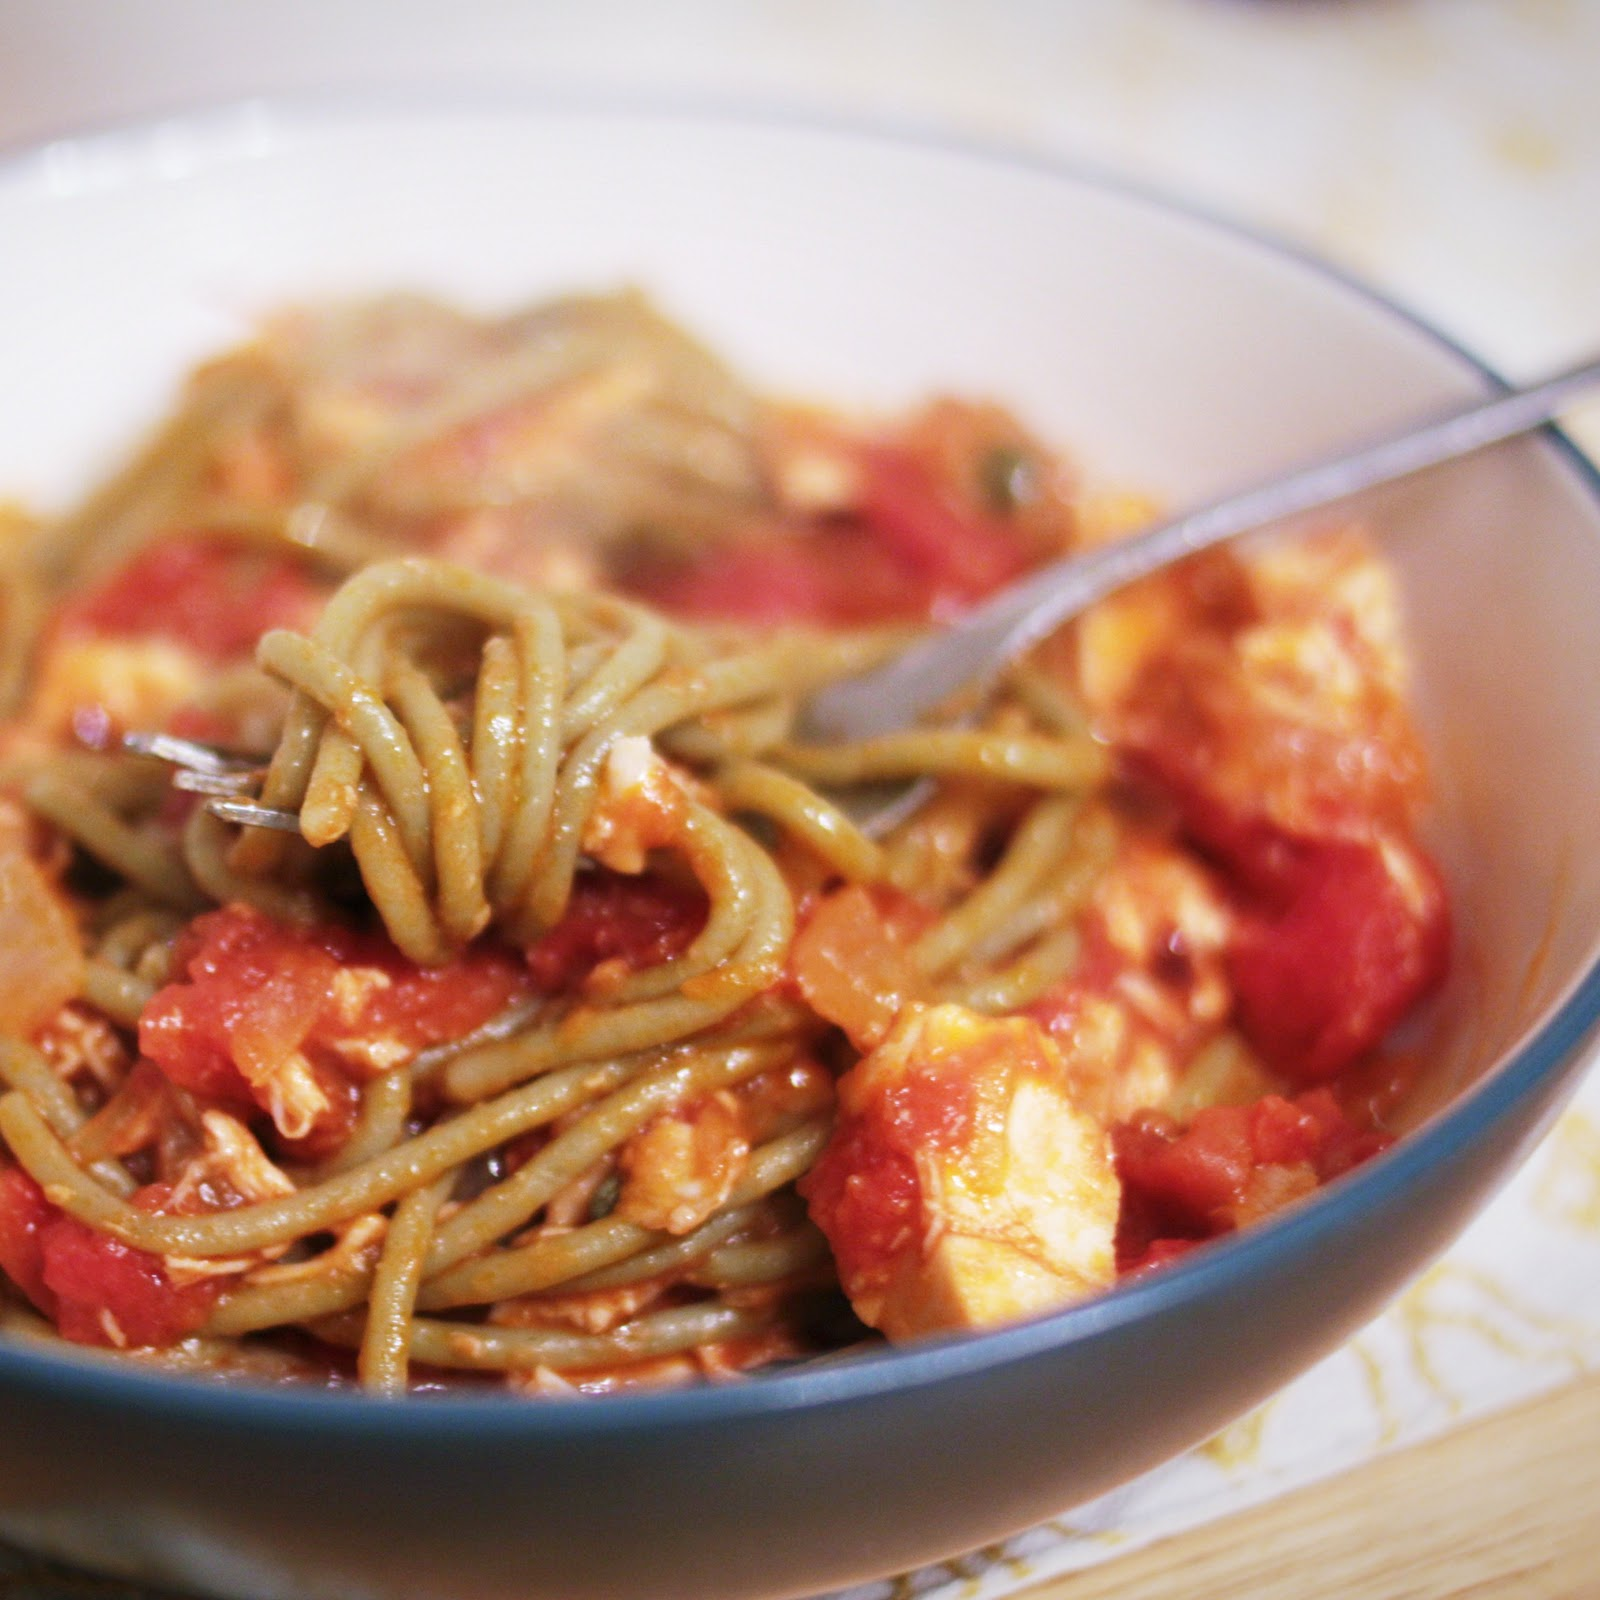 A Simple Life: Brown-Rice Spinach Spaghetti With Chicken